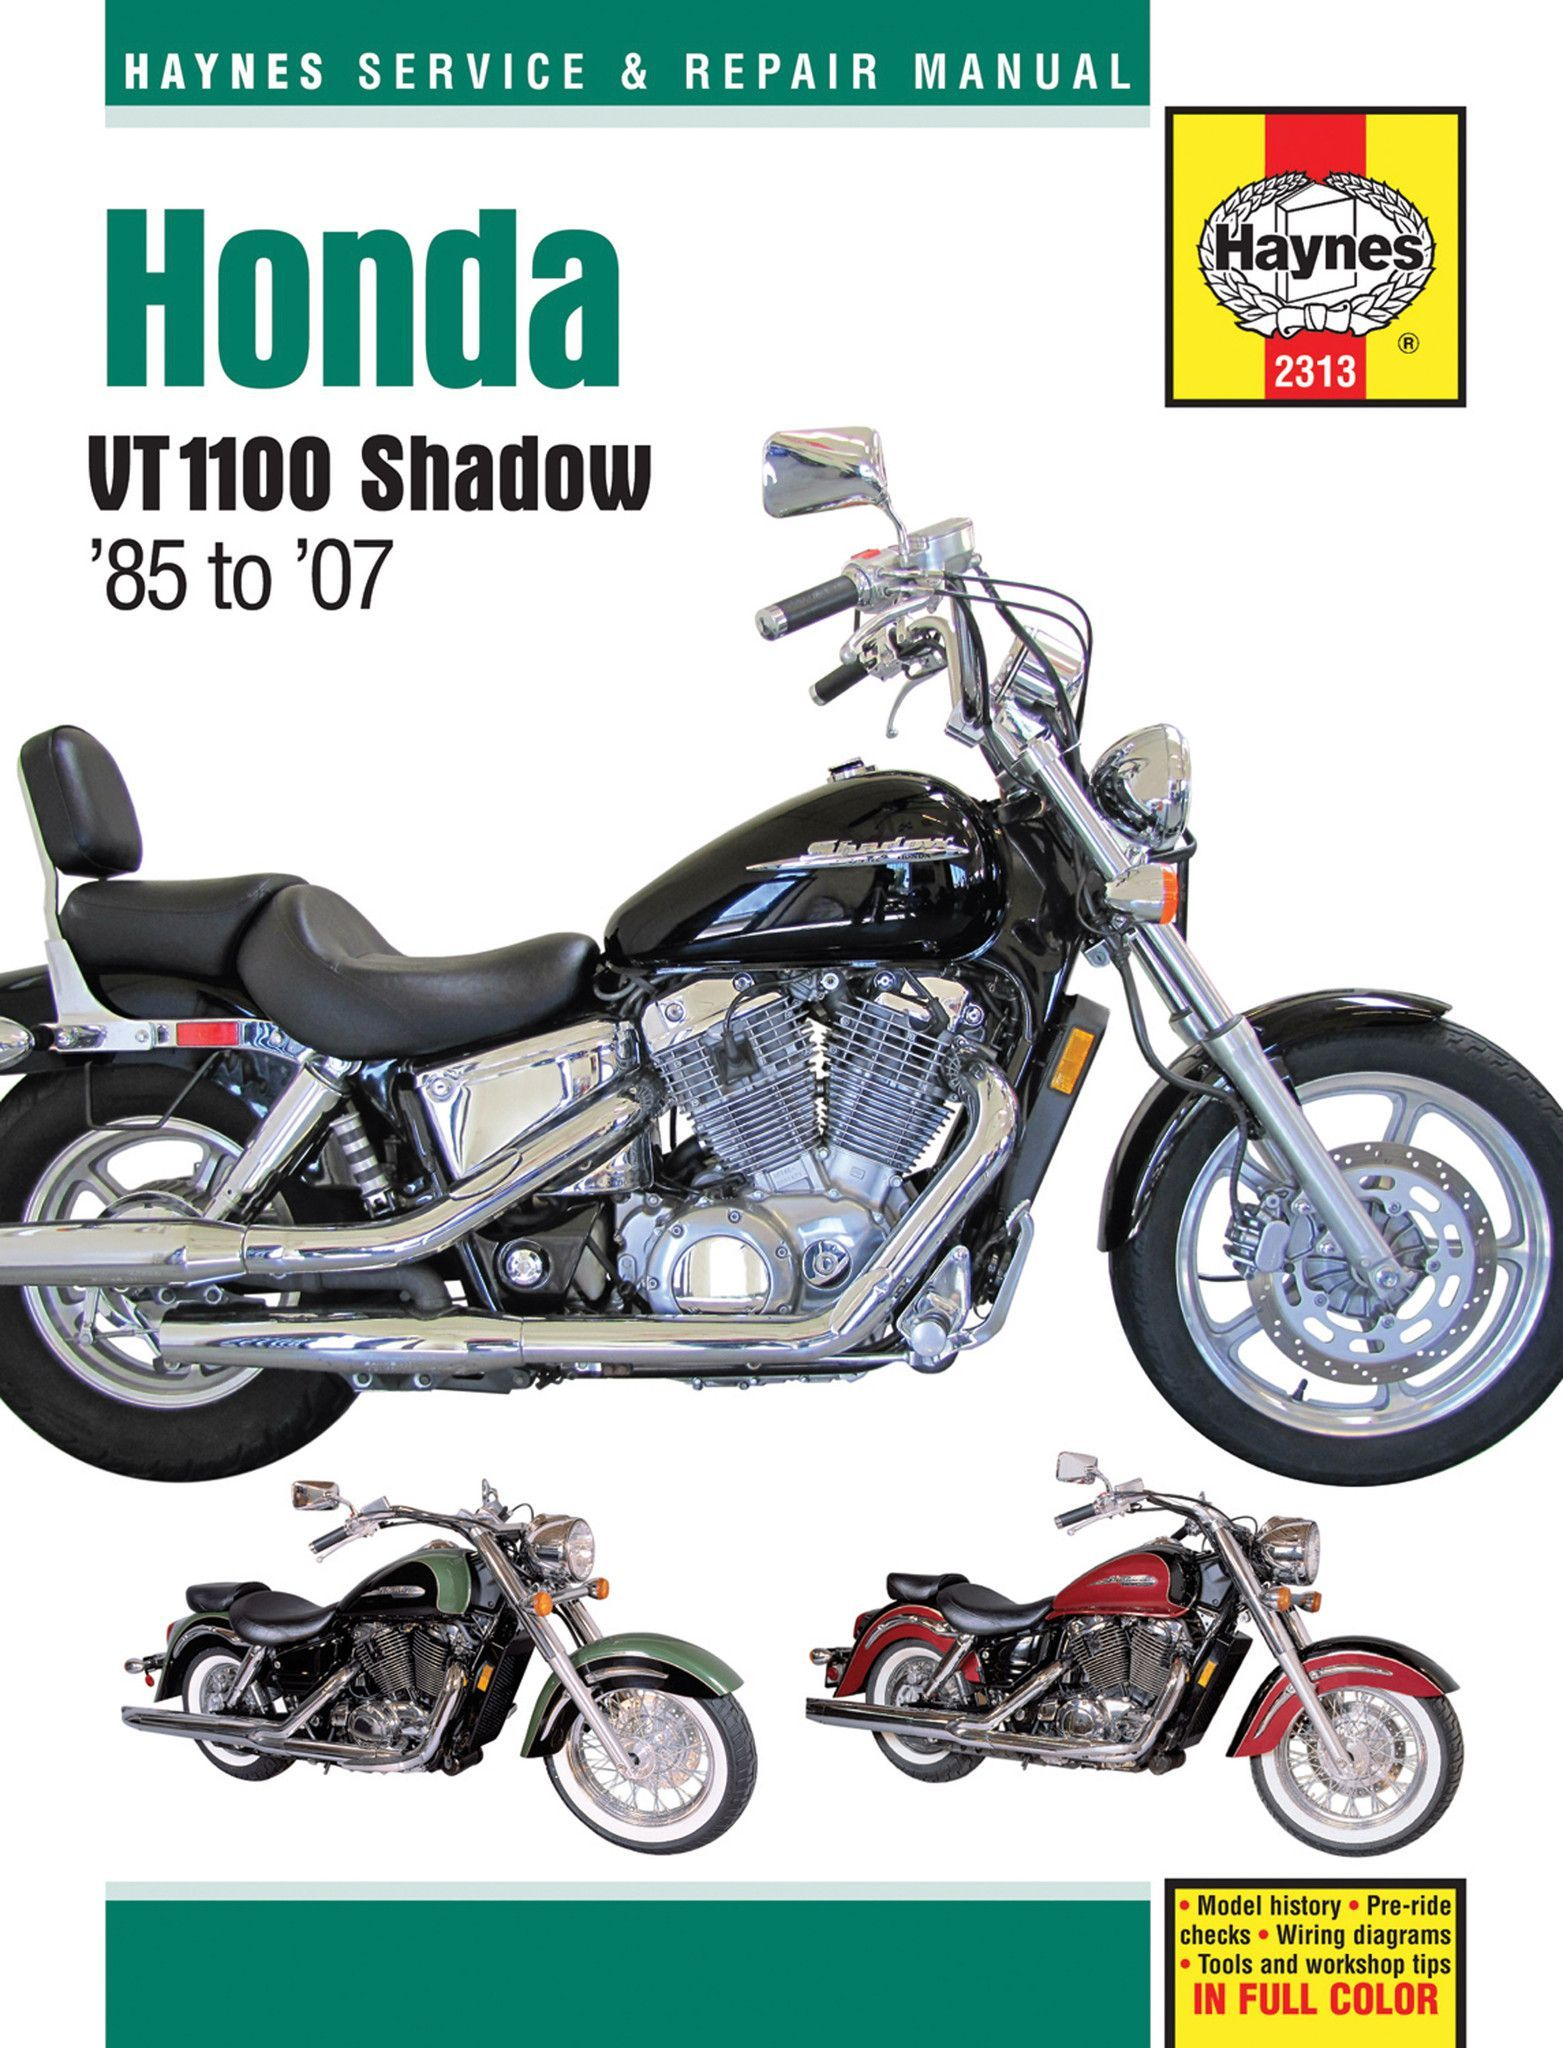 b548c75714cab9818af677b5f1a70187 haynes m2313 service & repair manual for 1985 07 honda shadow 08 Honda Shadow at eliteediting.co